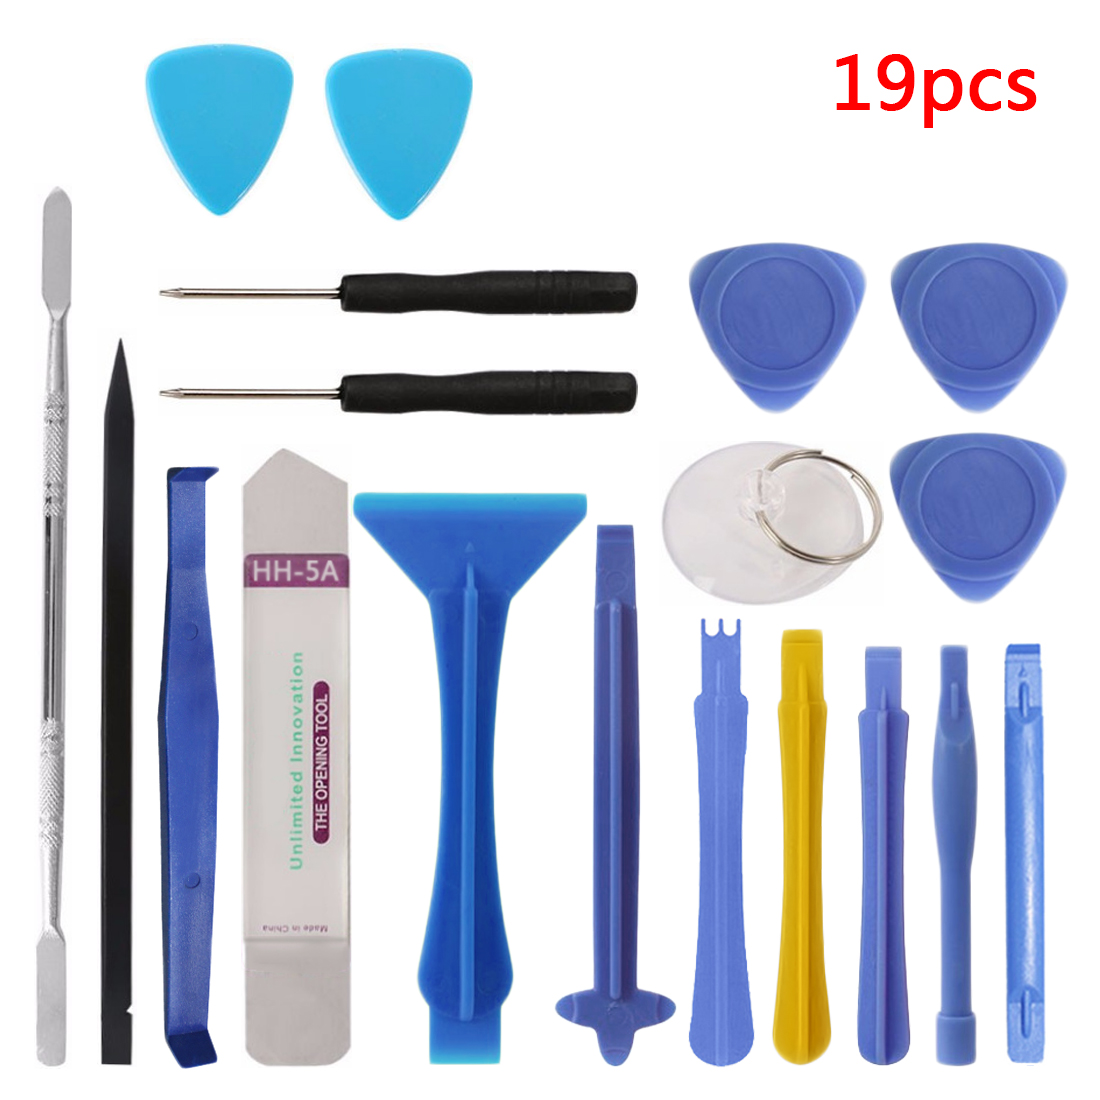 19 in 1 Opening Tool Metal Pry Bar Smartphone Screen Disassemble Tools Repair Tools Kit for iPhone Tablet PC Hand Tool Set